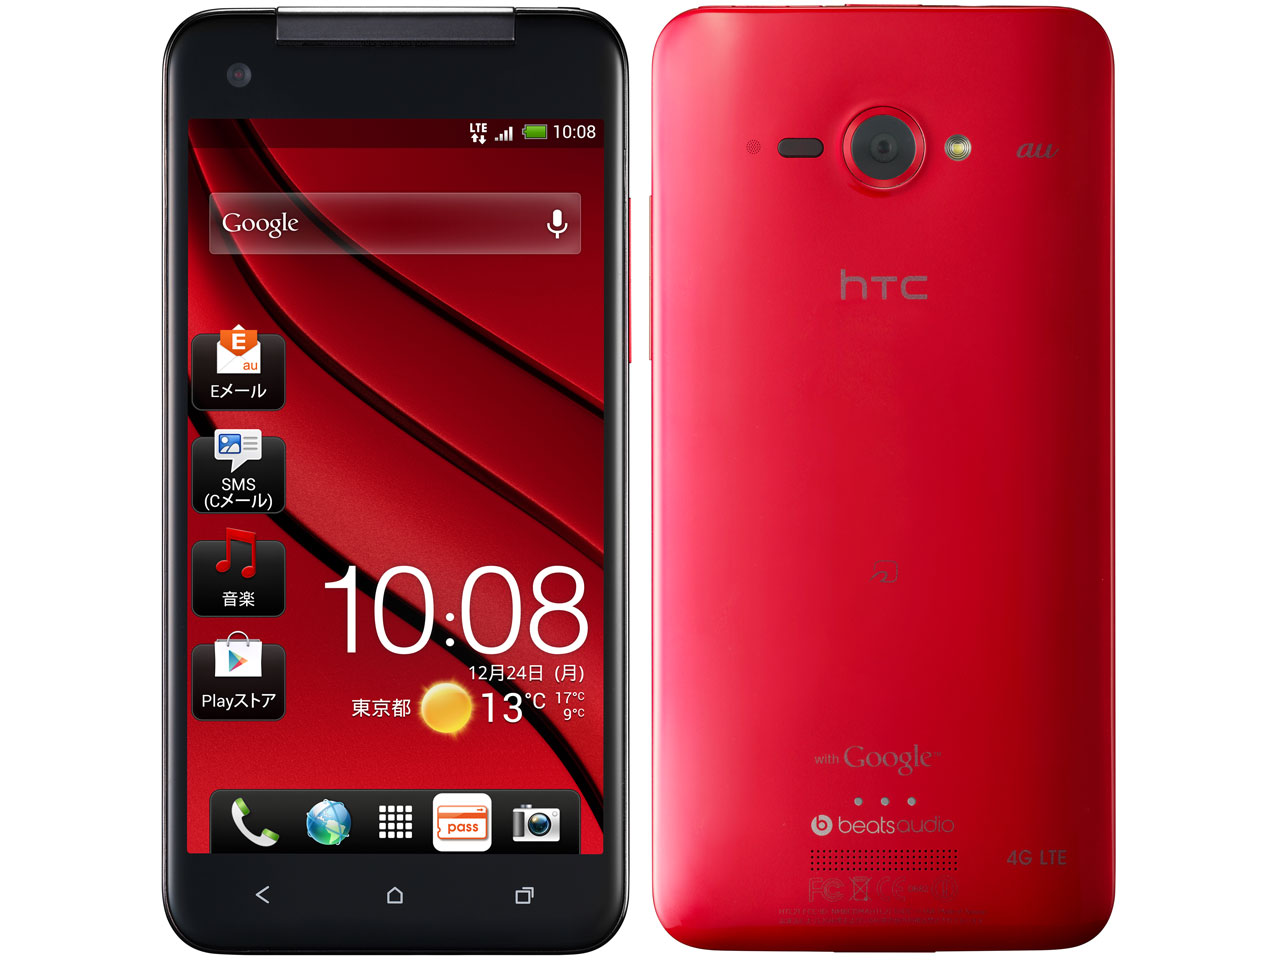 1e0f034525 HTC J butterfly HTL21の評判やXperia Zとの比較